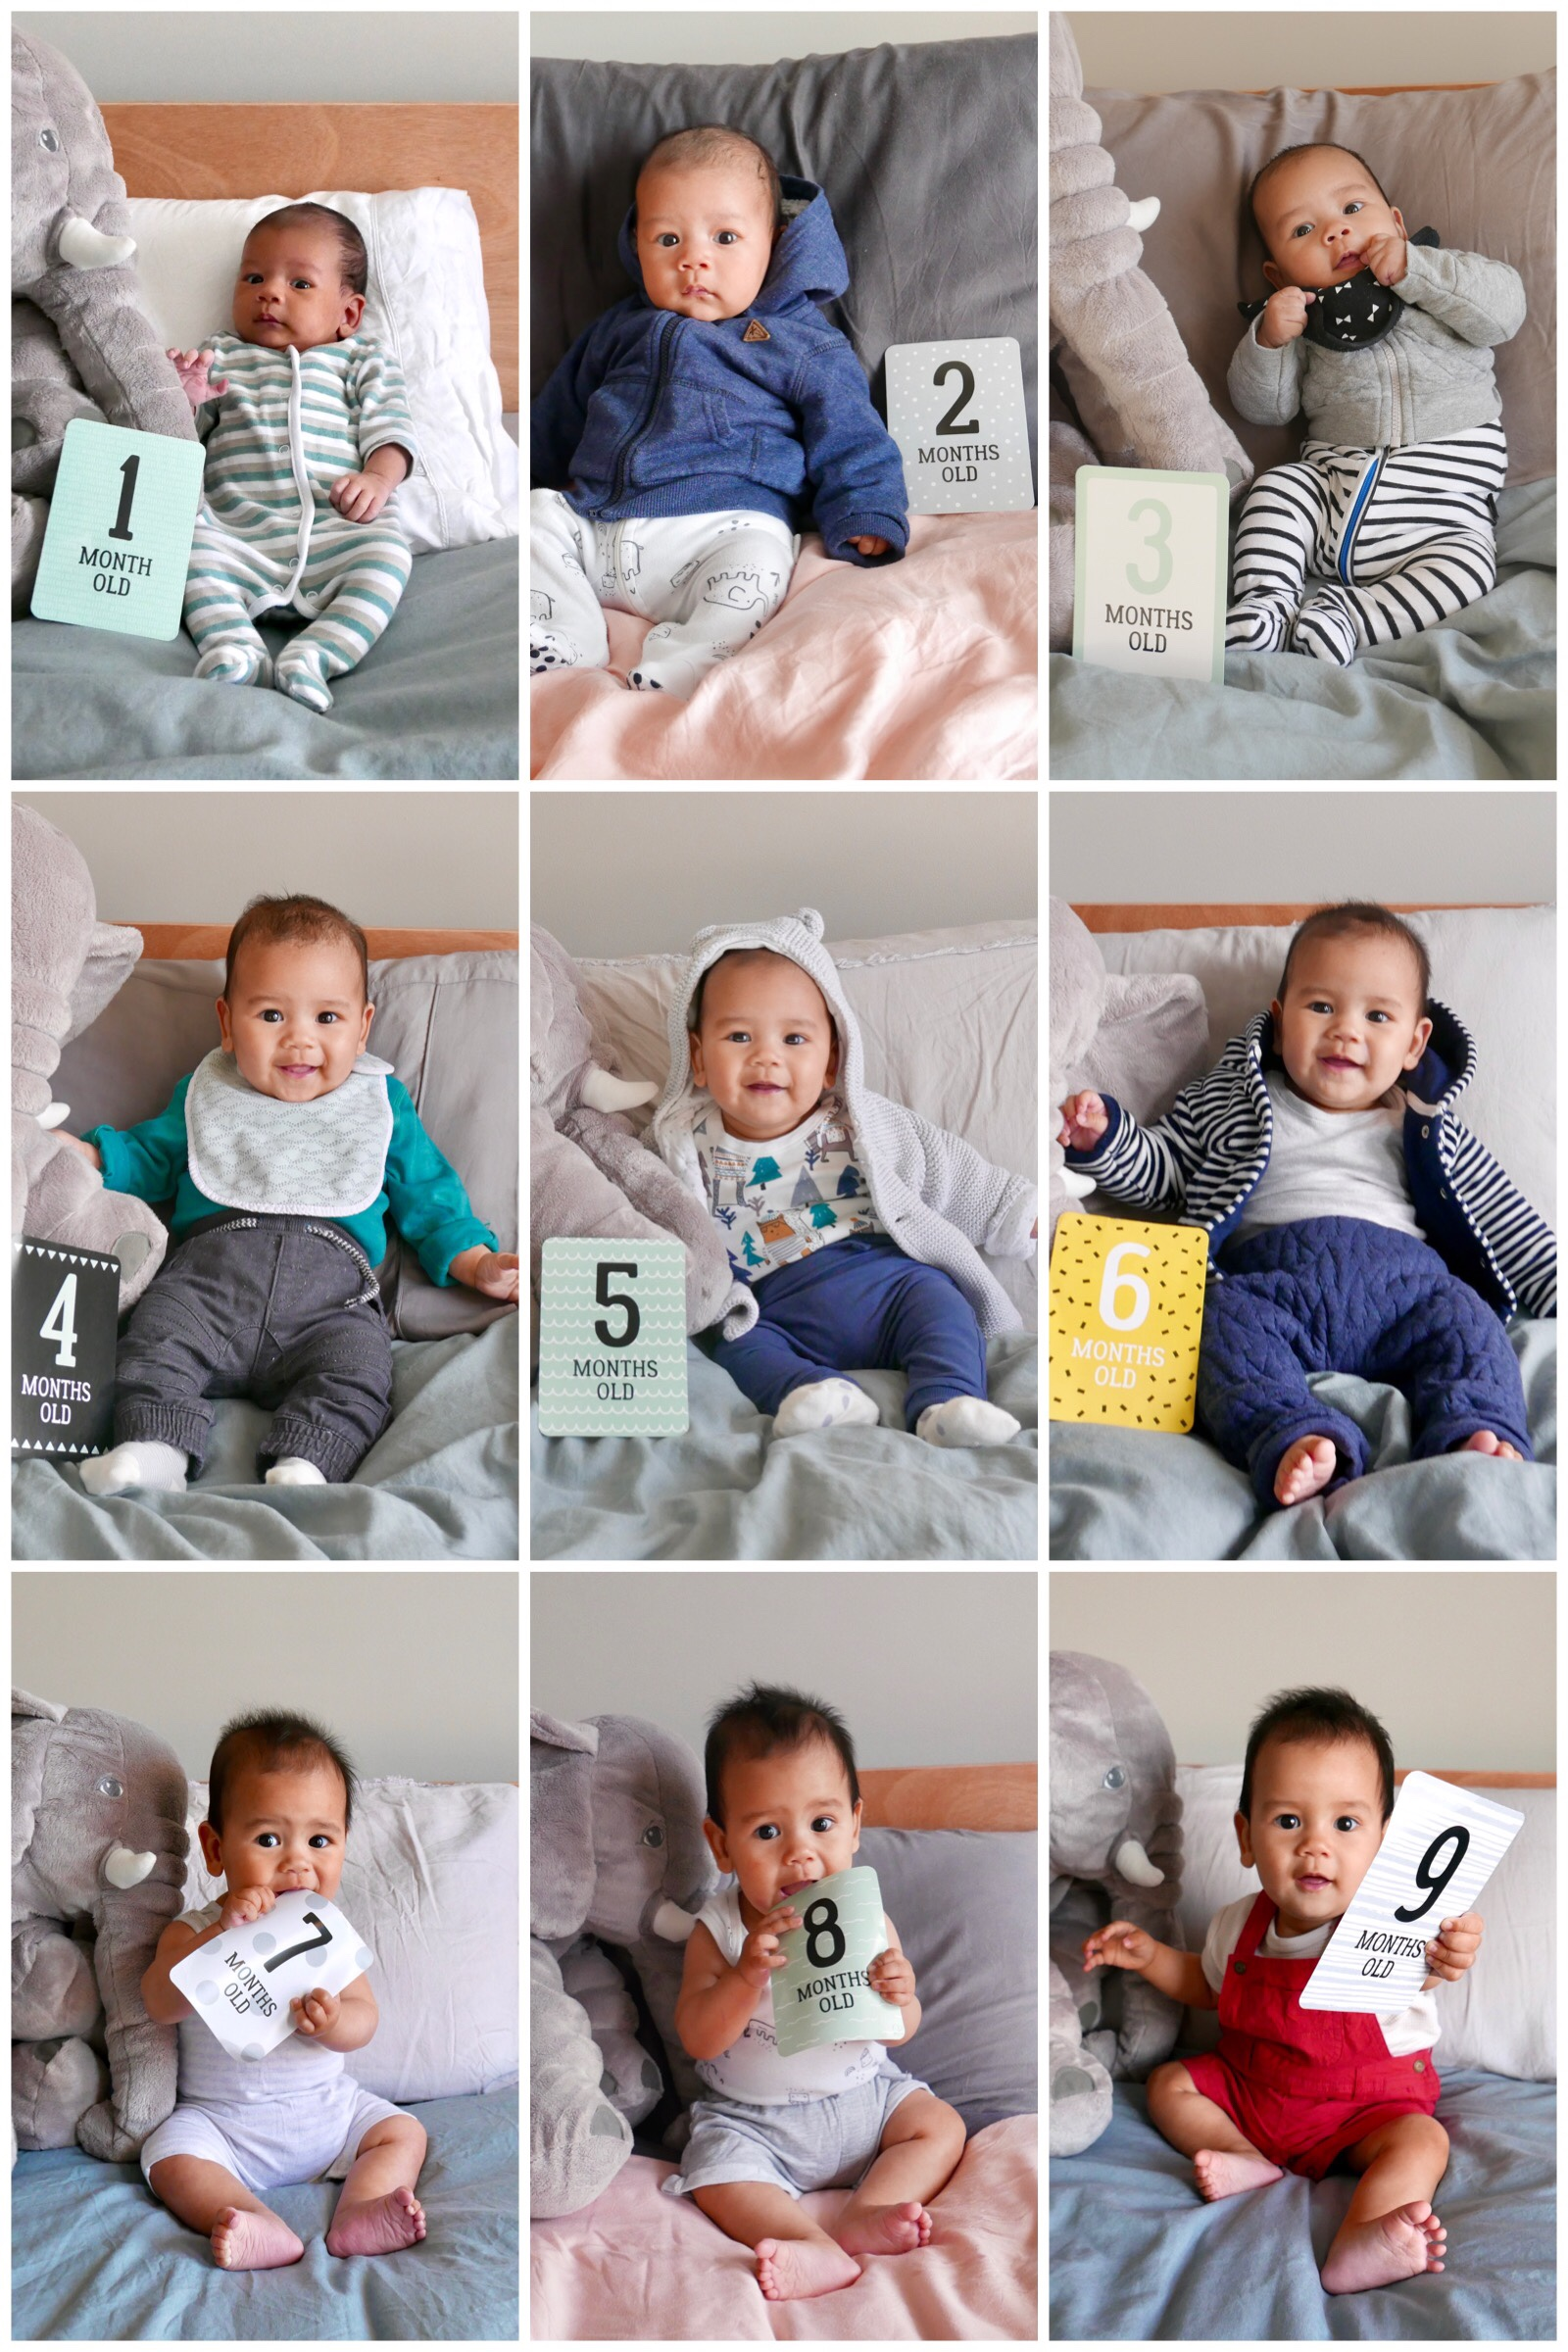 9 photos of a baby, from 1 month old to 9 months